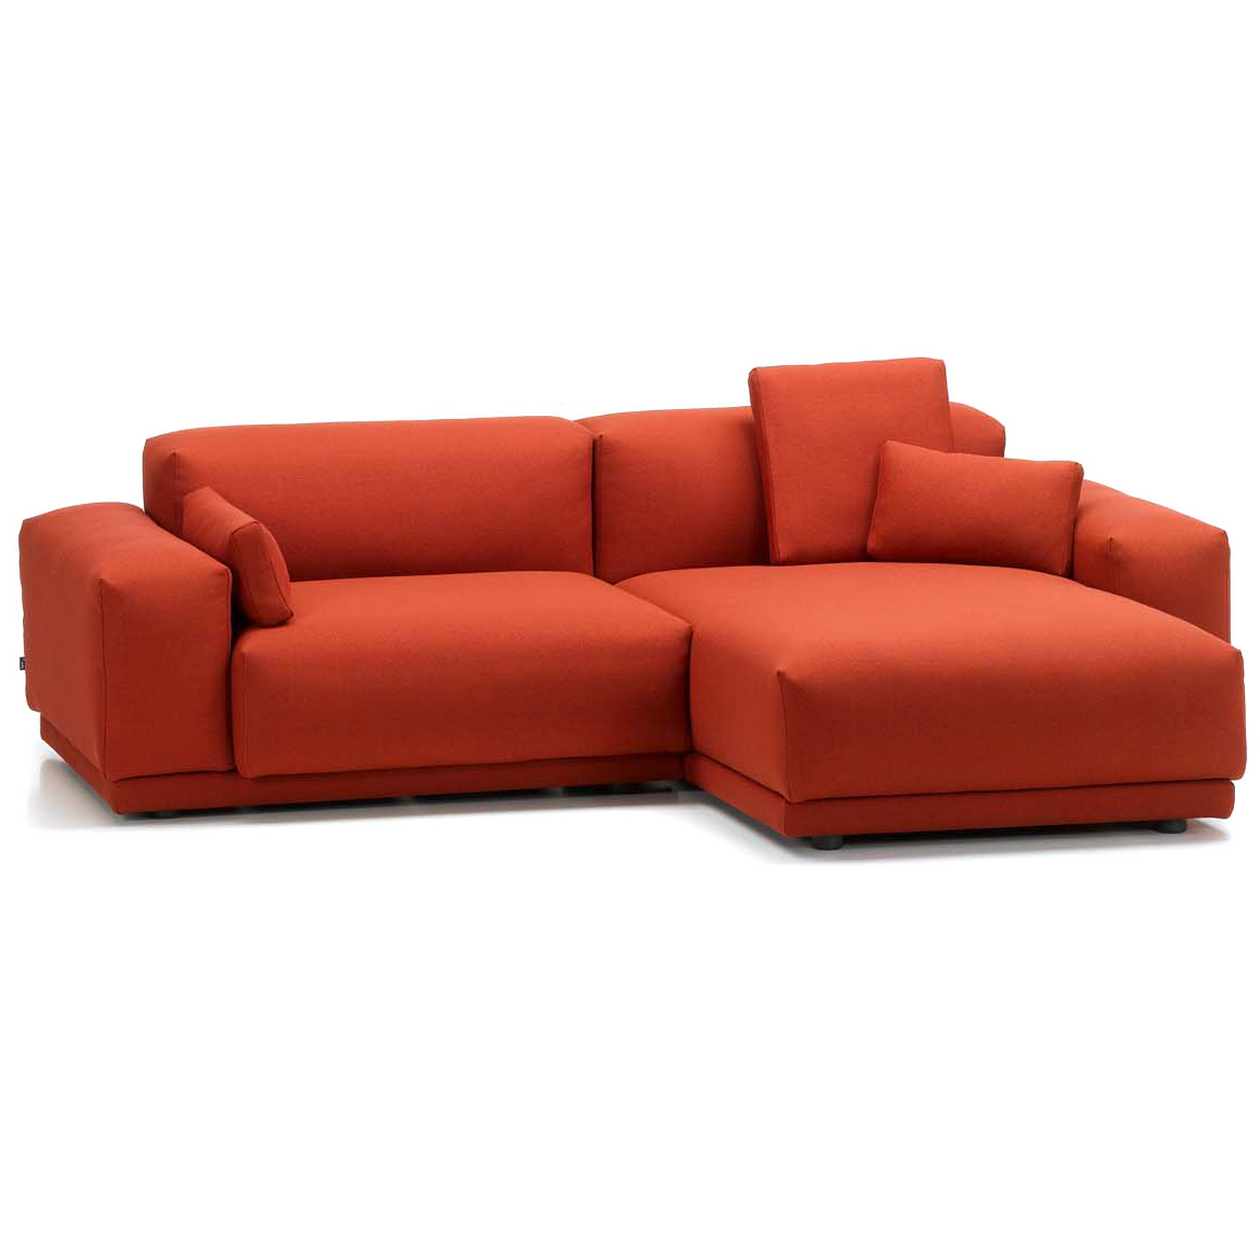 Two seater sofa with chaise Chaise longue bascule 2 places